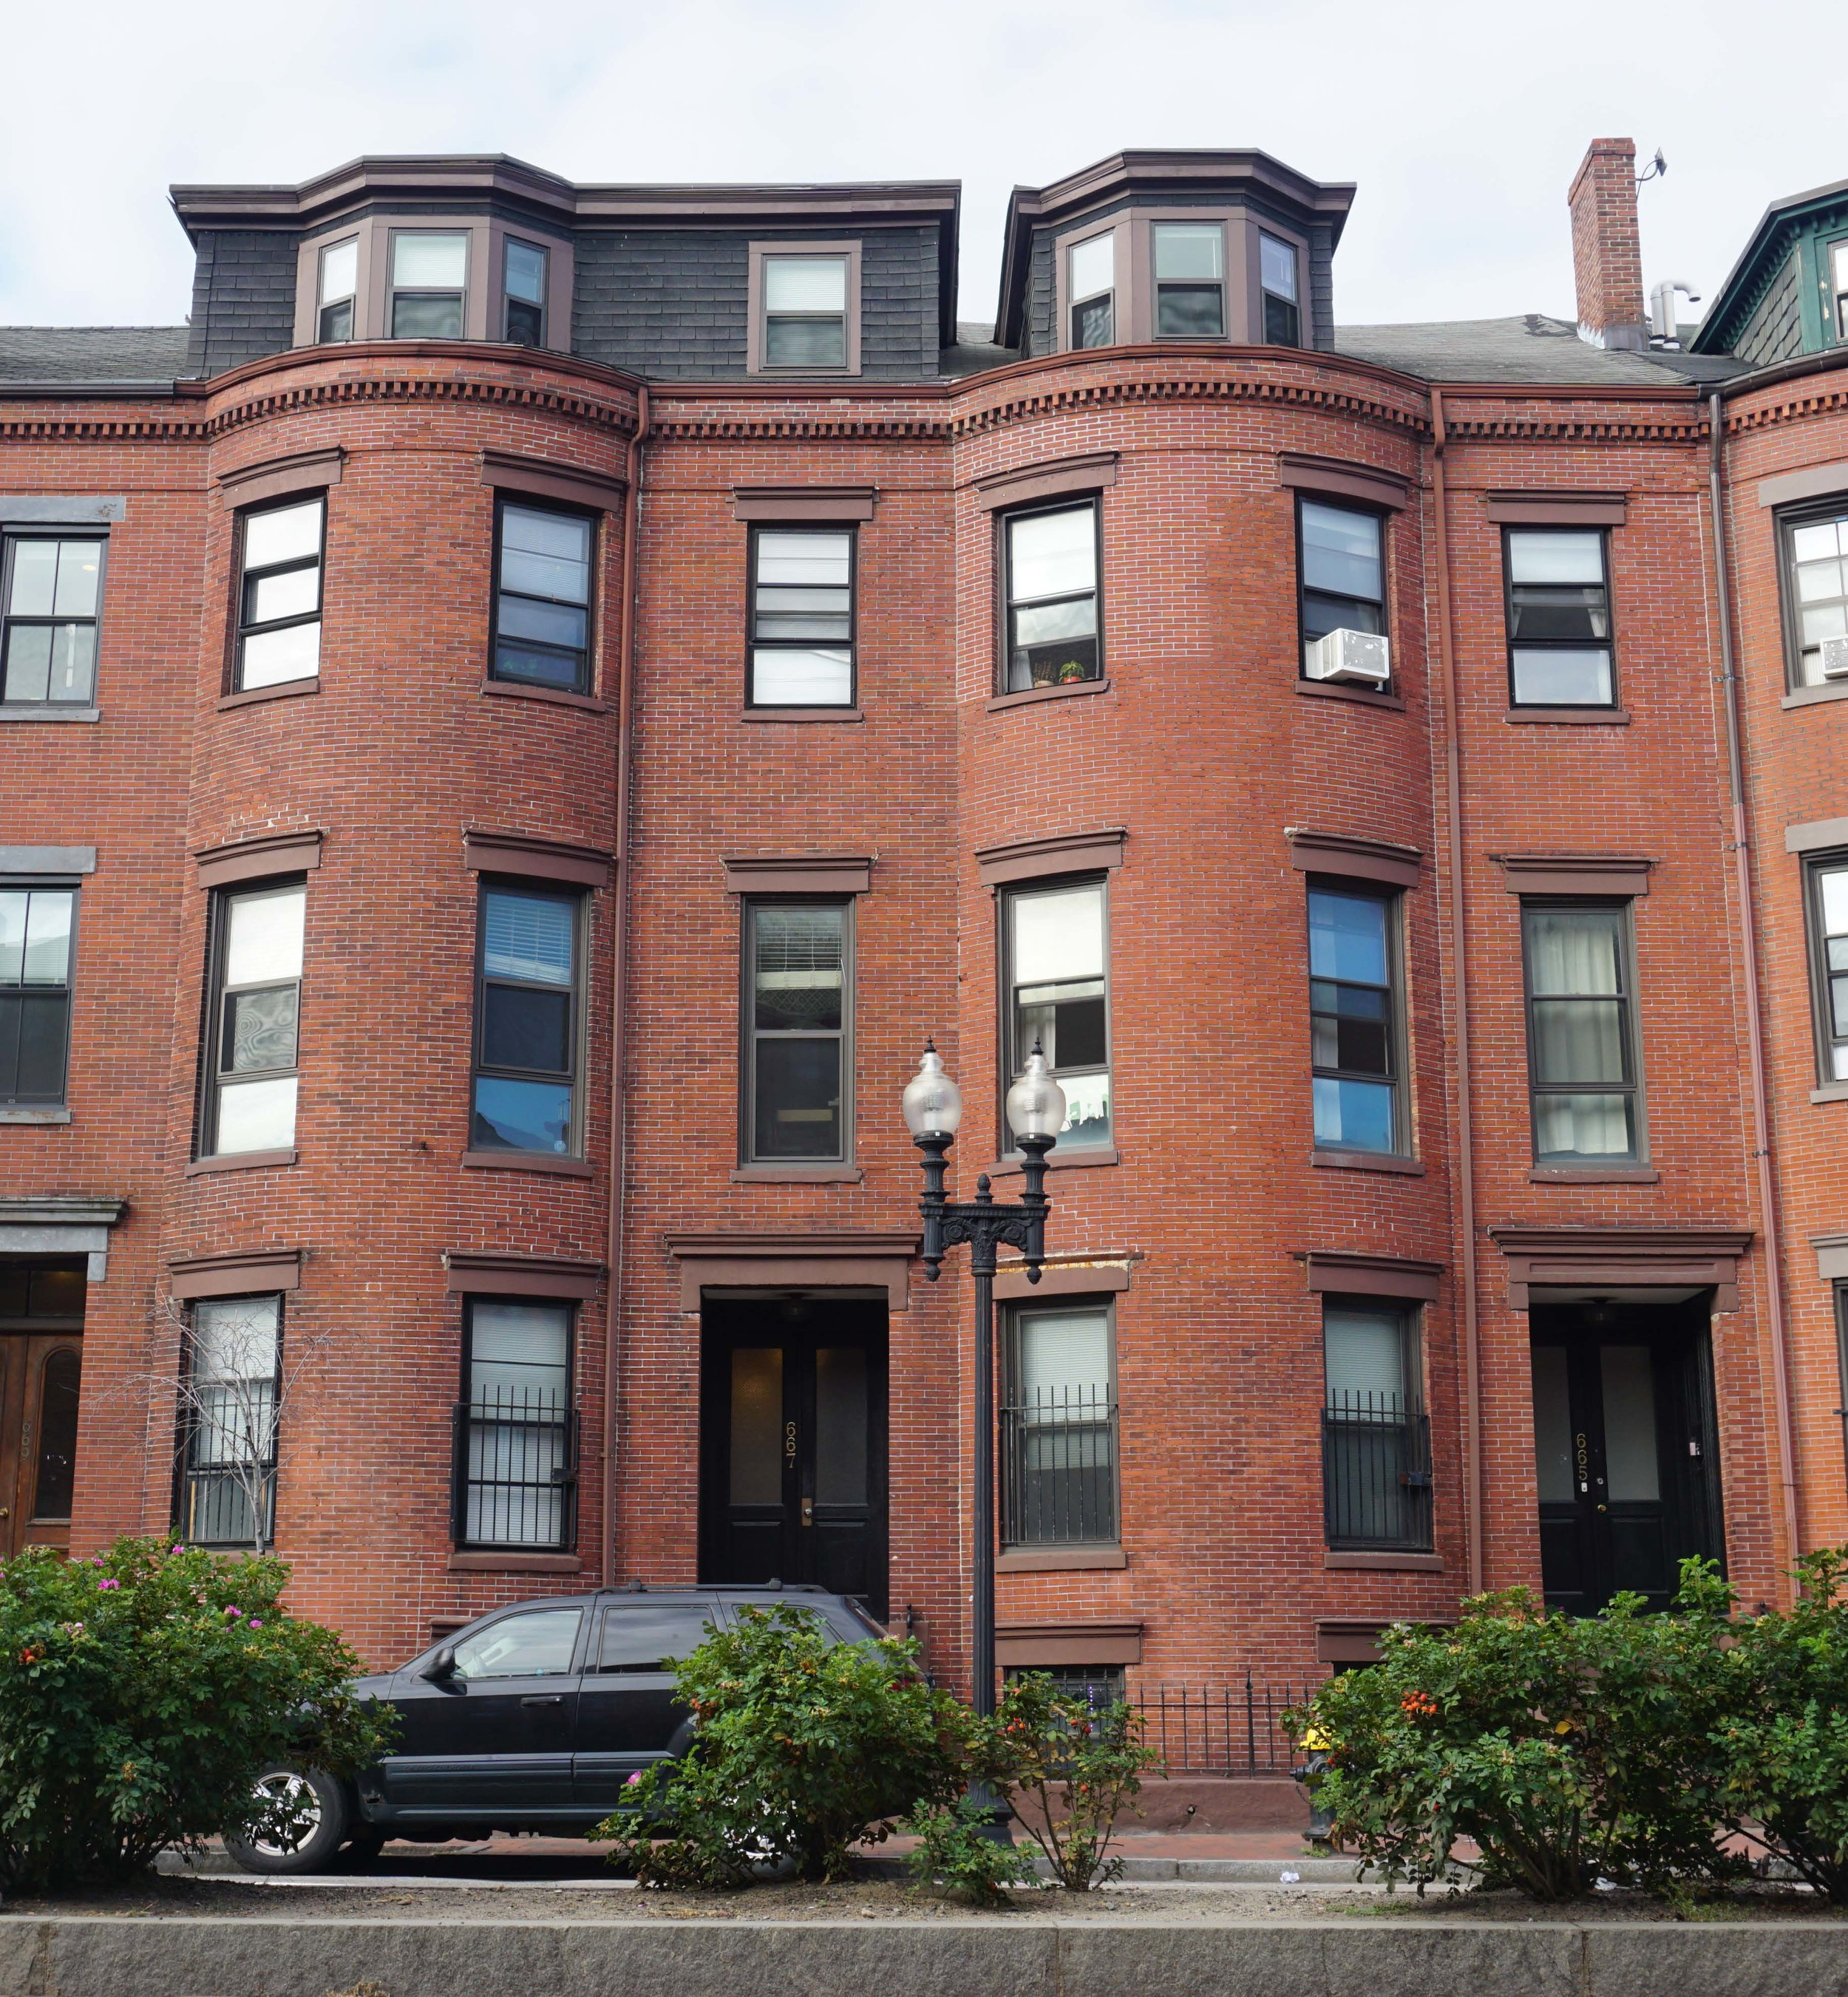 665 - 667 Massachusetts Avenue, Boston